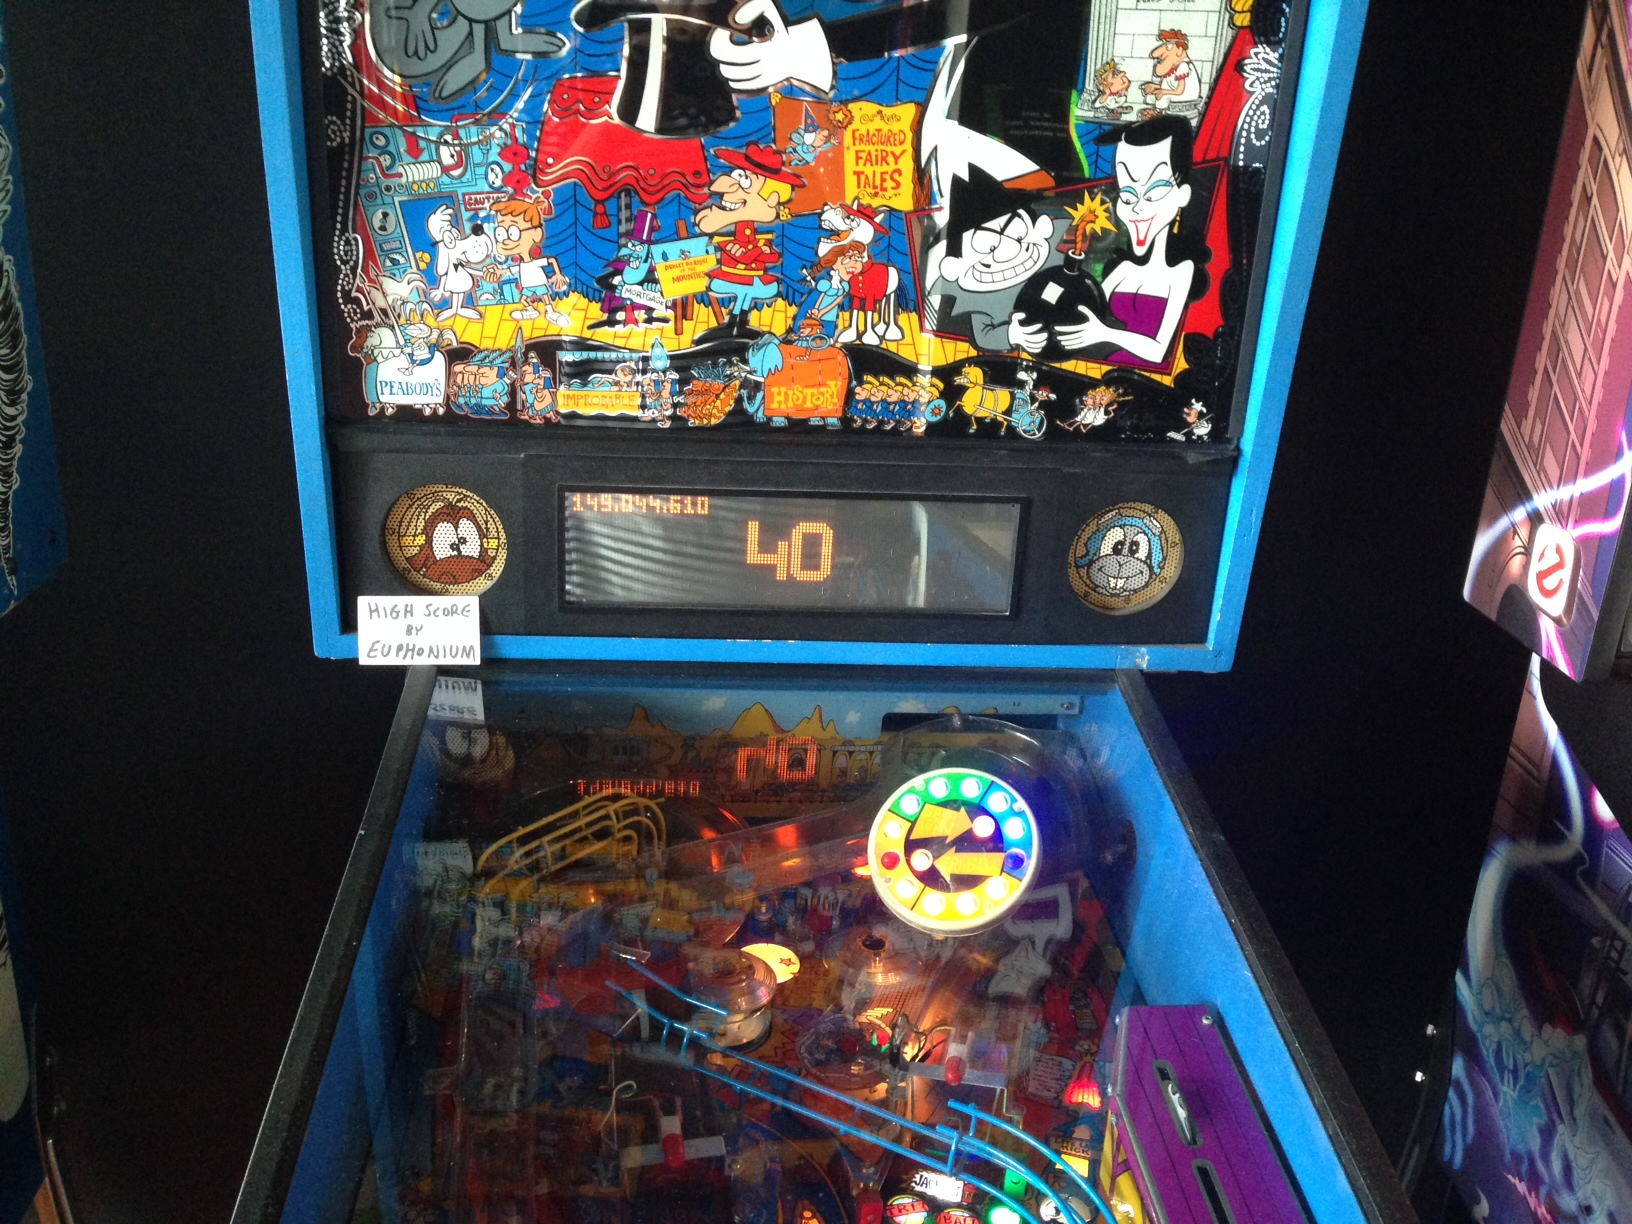 euphonium: Adventures of Rocky and Bullwinkle (Pinball: 3 Balls) 149,044,610 points on 2017-05-14 21:04:06